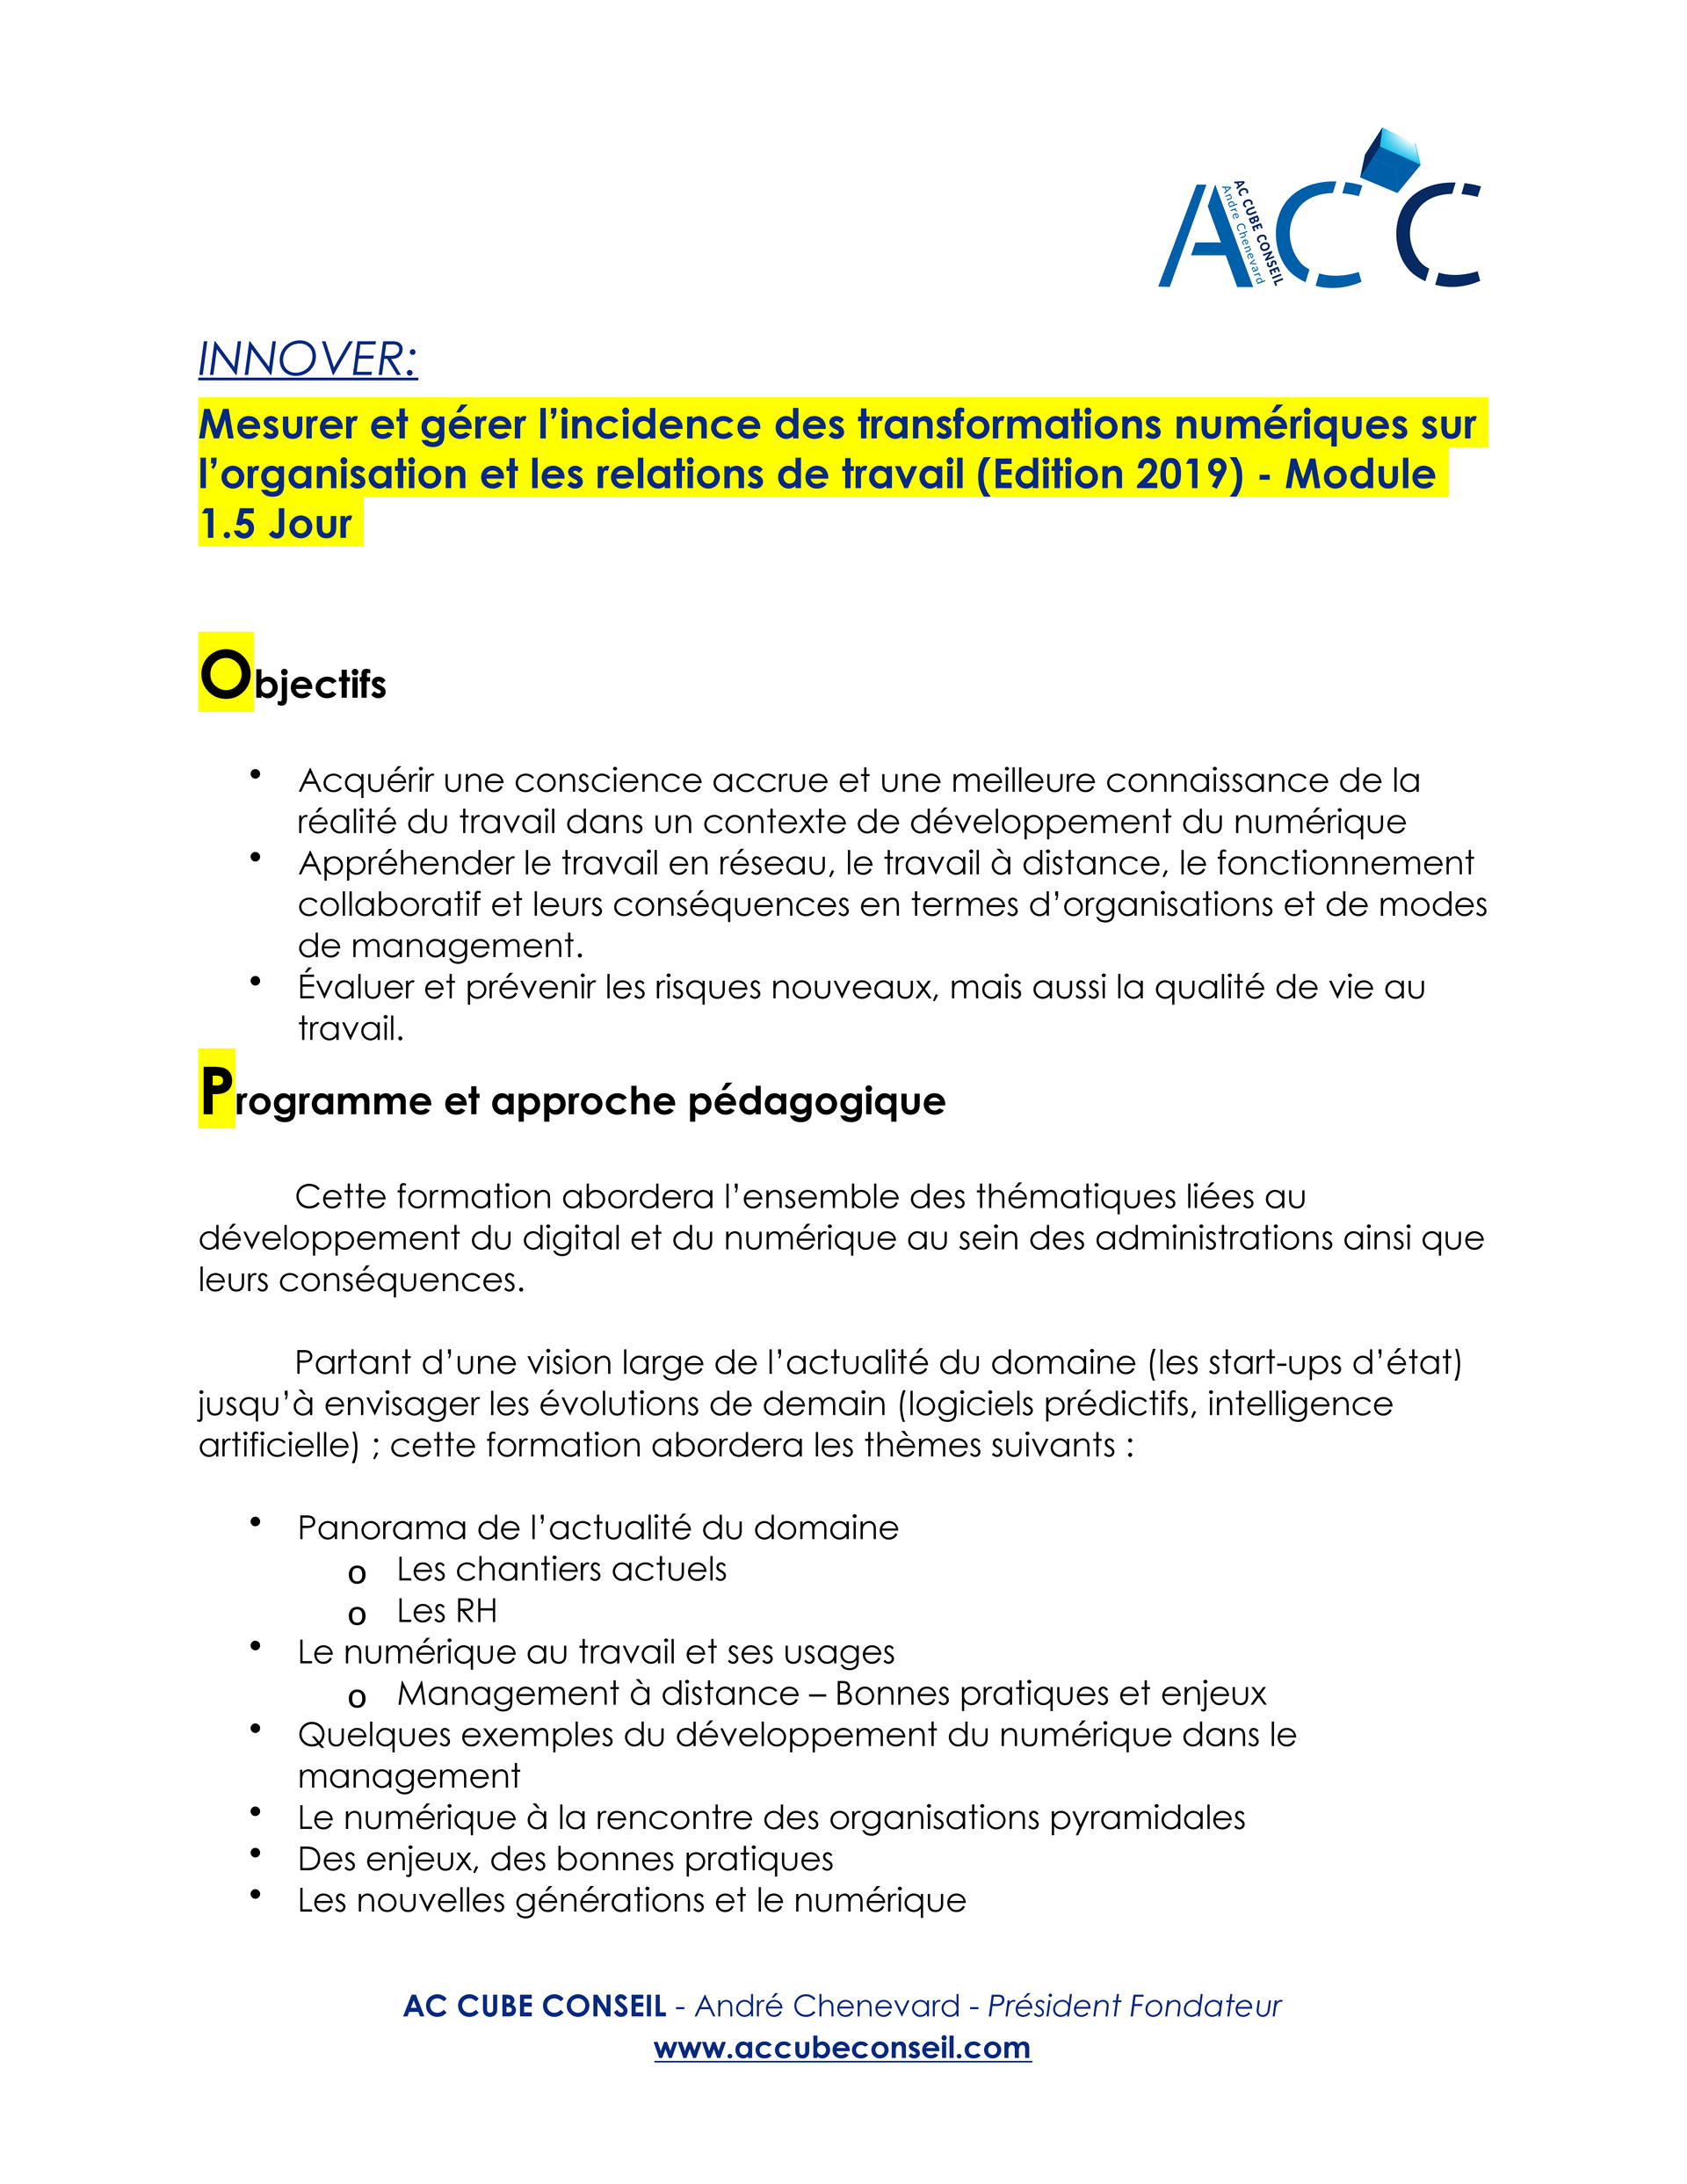 AC CUBE CONSEIL - INNOVER_Page_05.png